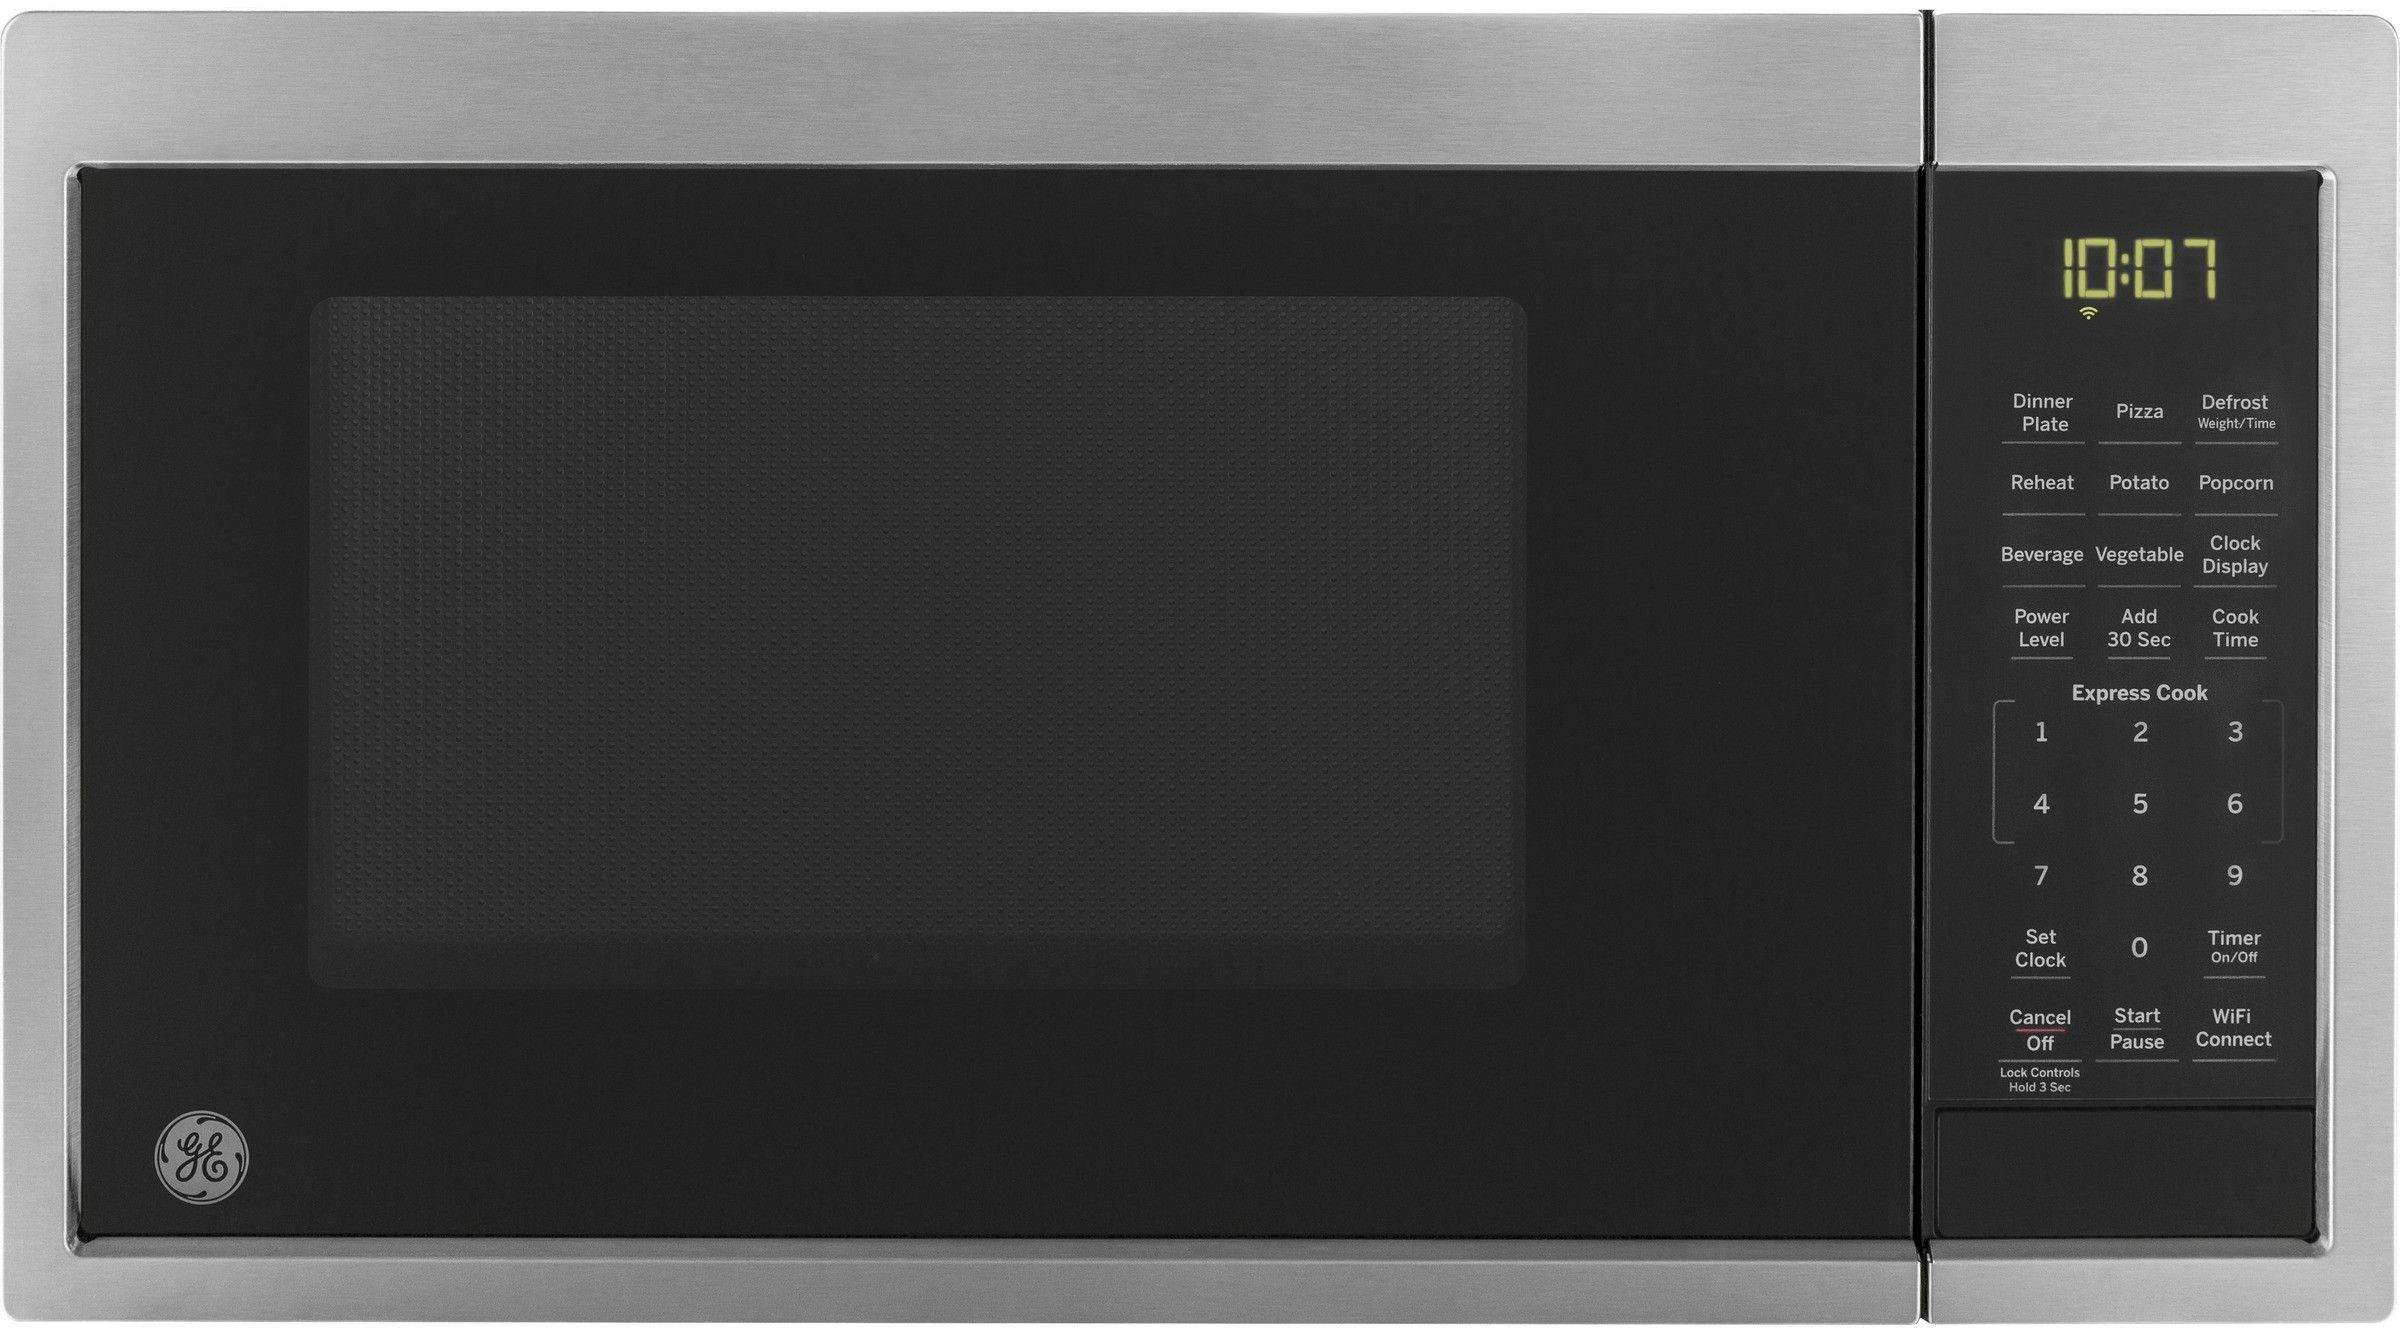 Ge Jes1097smss Countertop Microwave Oven Microwave Oven Microwave